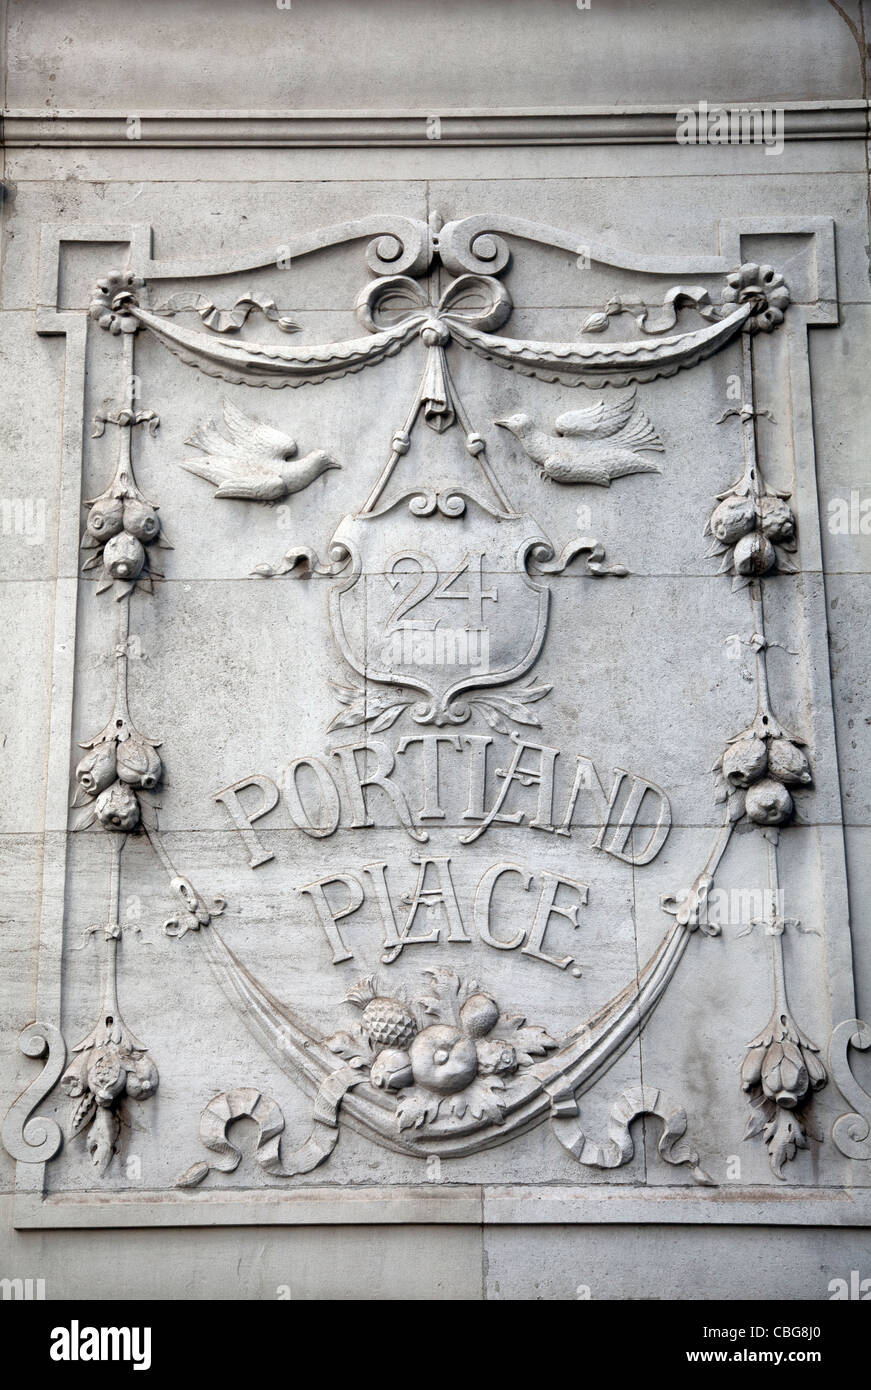 24 Portland Place - Name and Relief Carving on stone wall - Stock Image